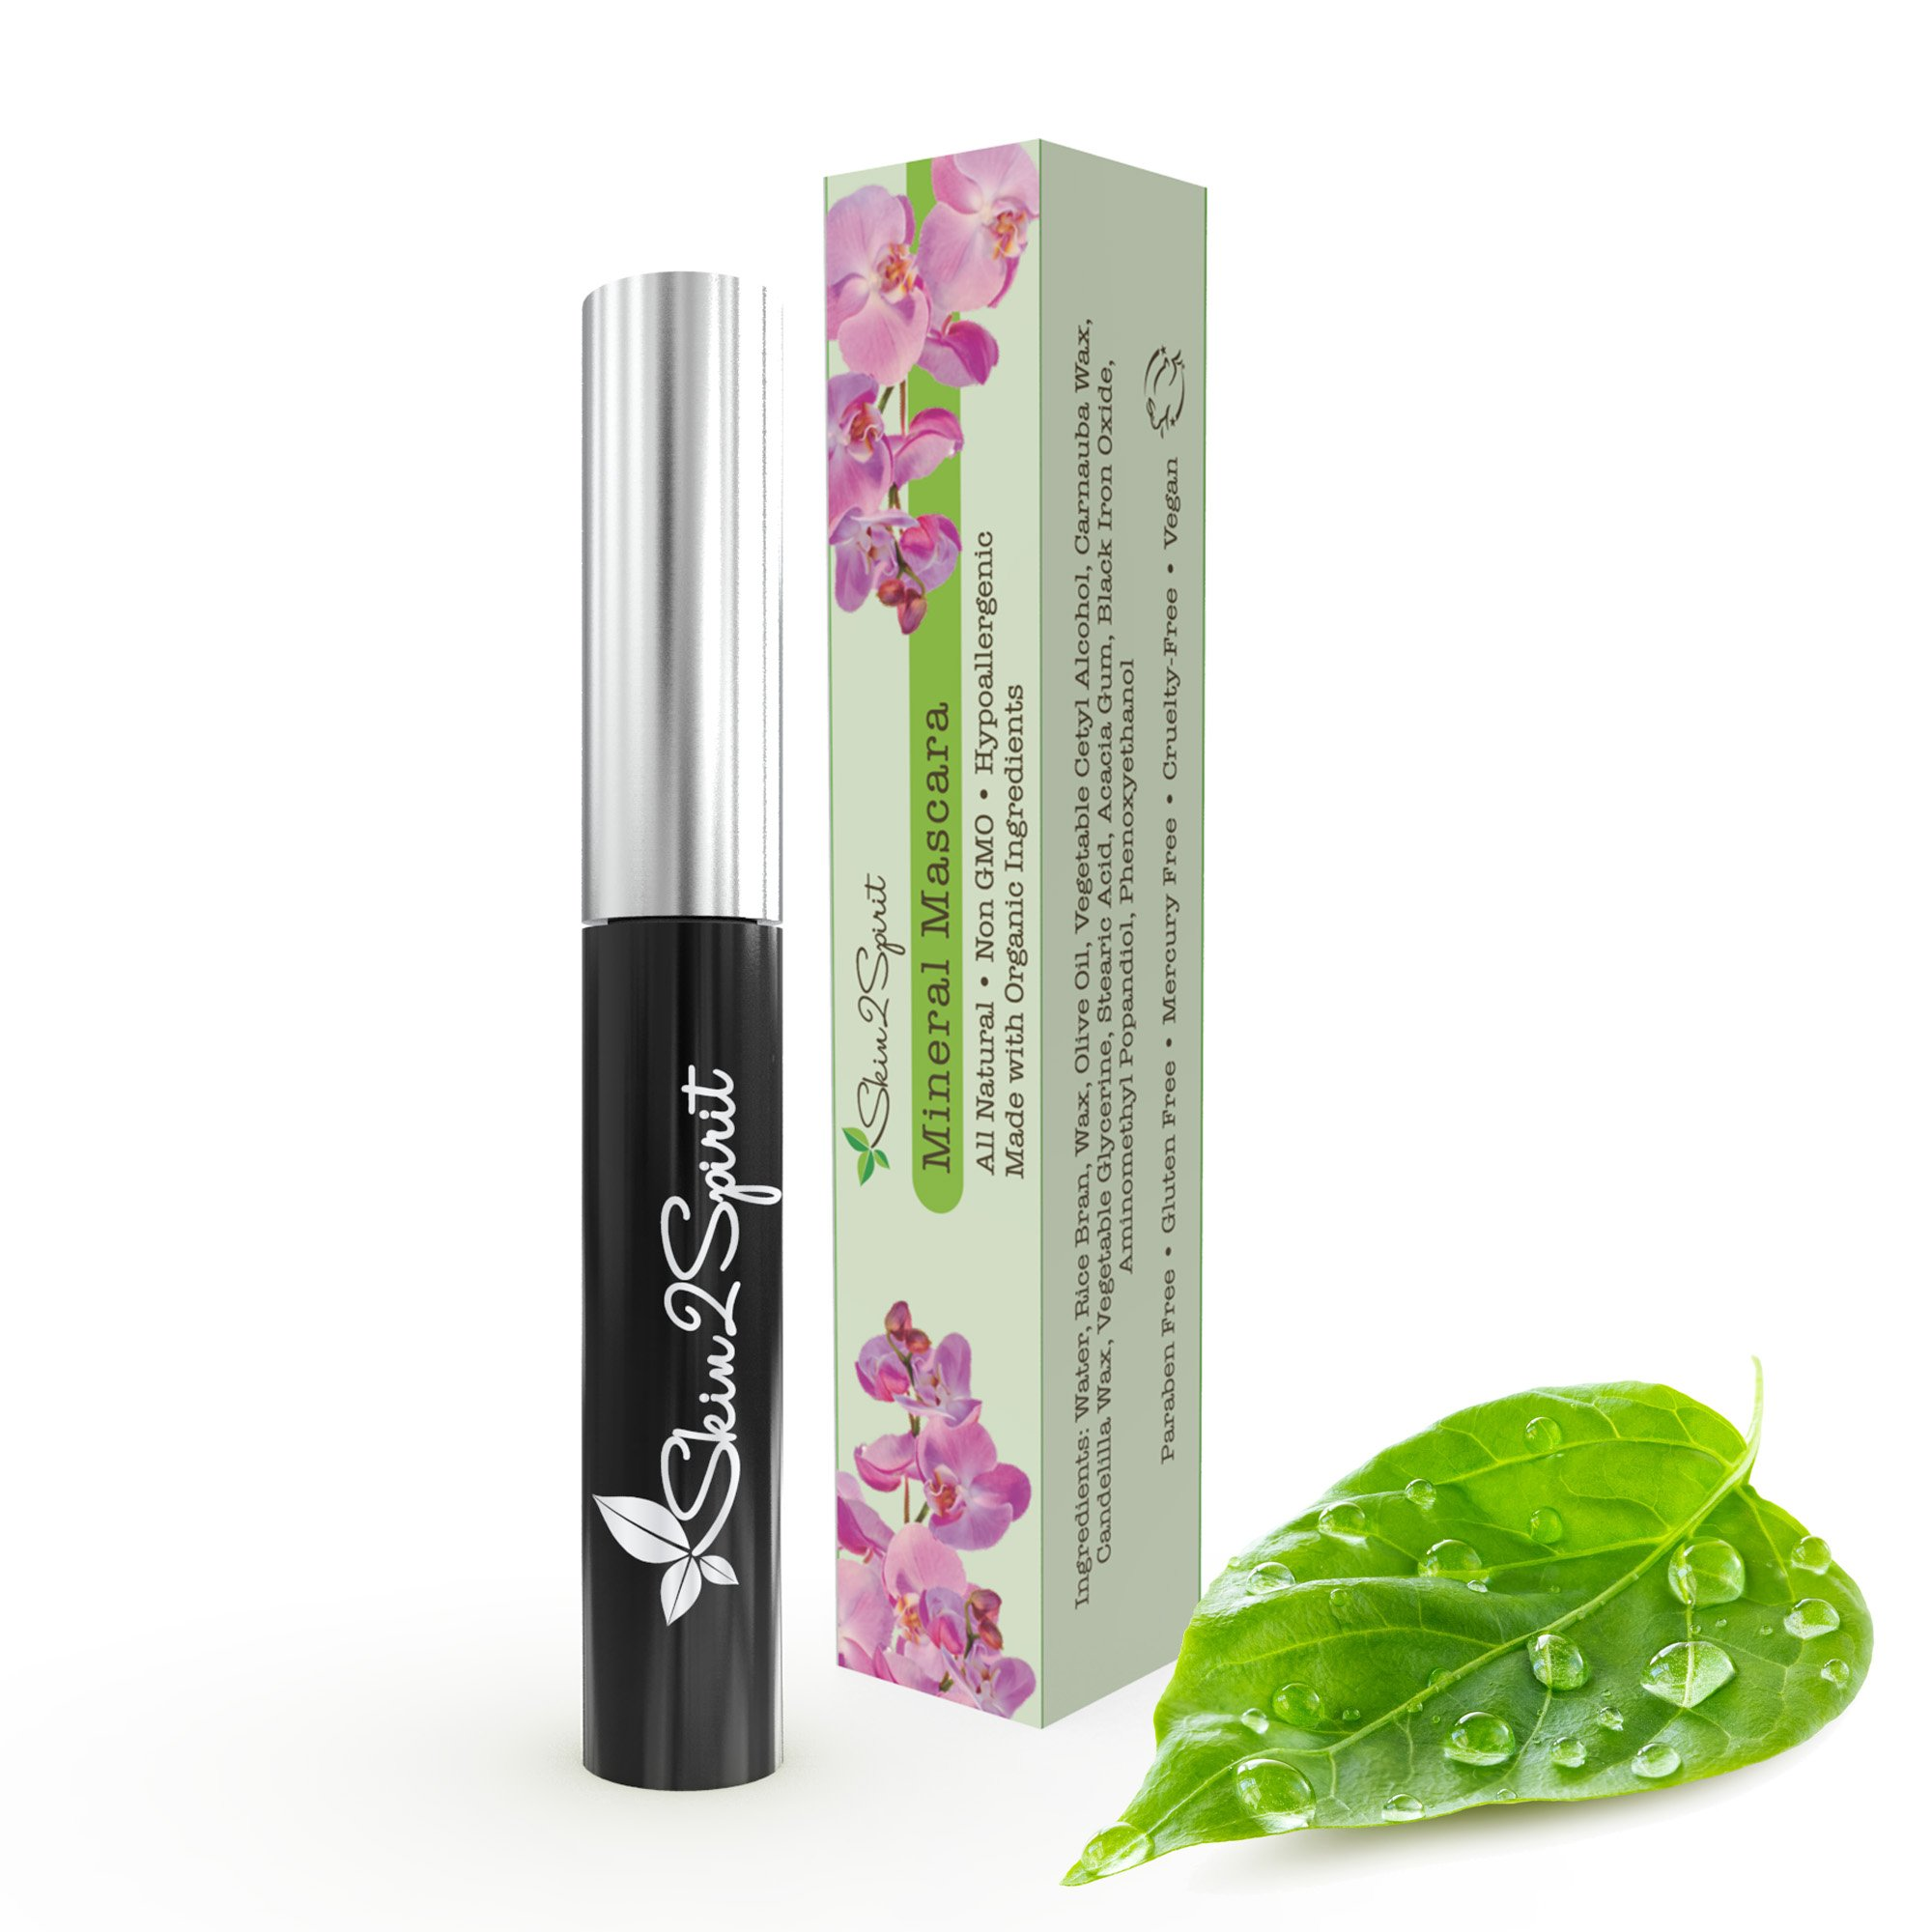 5b5c1e1eaed Amazon.com : Natural Mineral Mascara | Made w Organic Ingredients ...